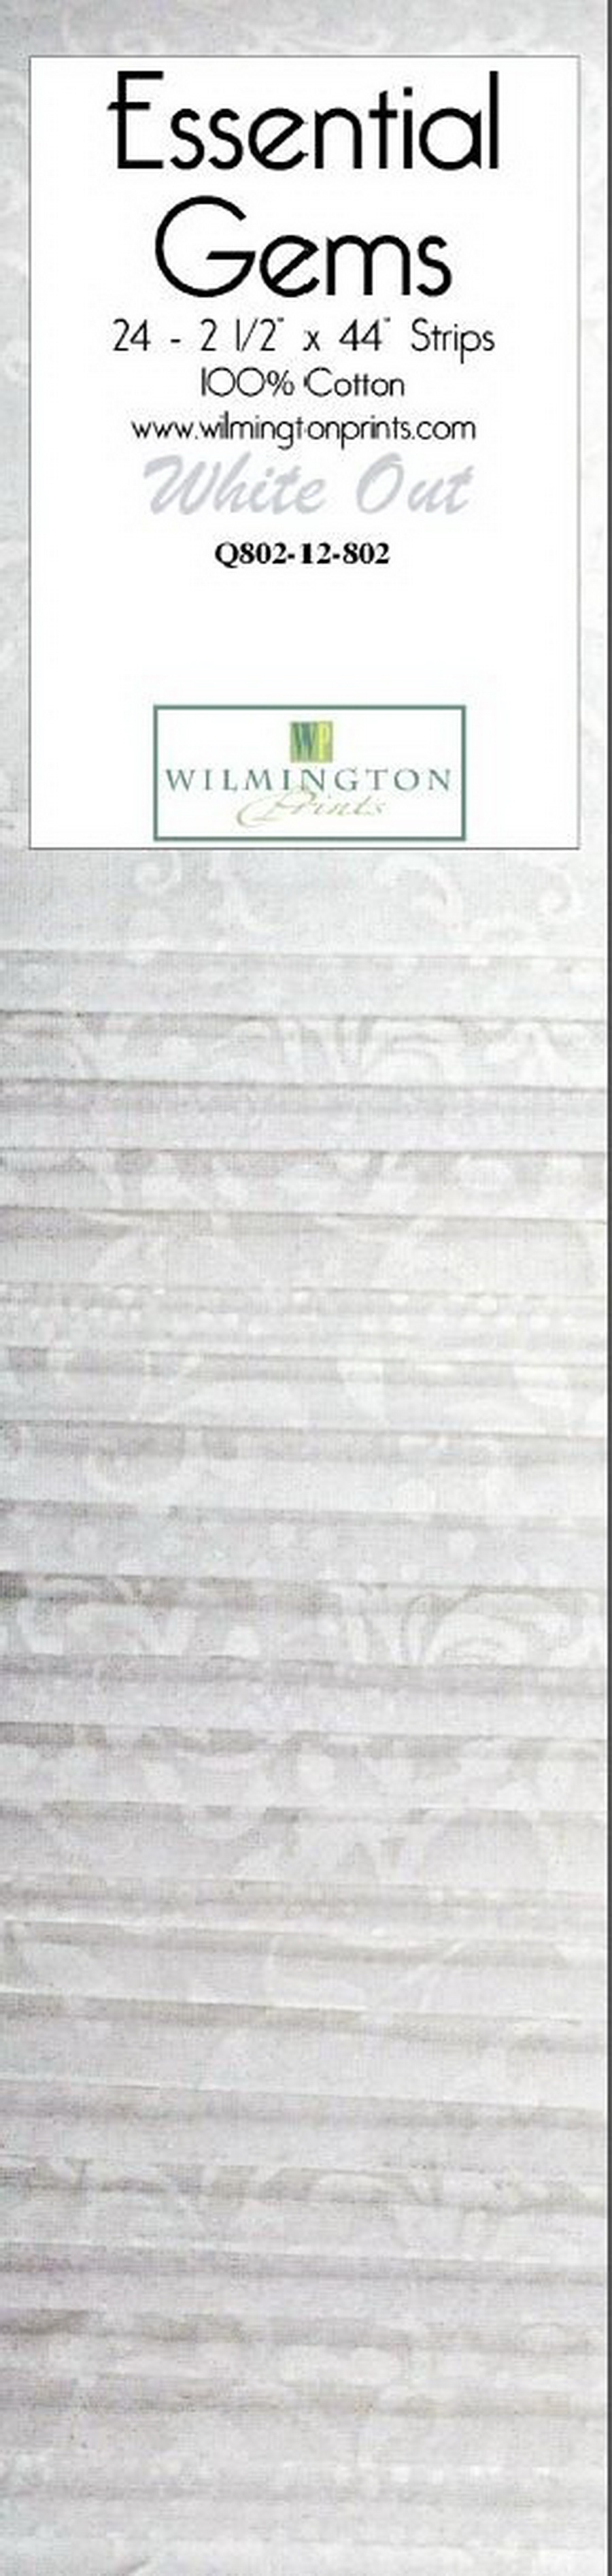 Wilmington Prints White Out 24 Pack - 2.5 inch x 44 inch Strips